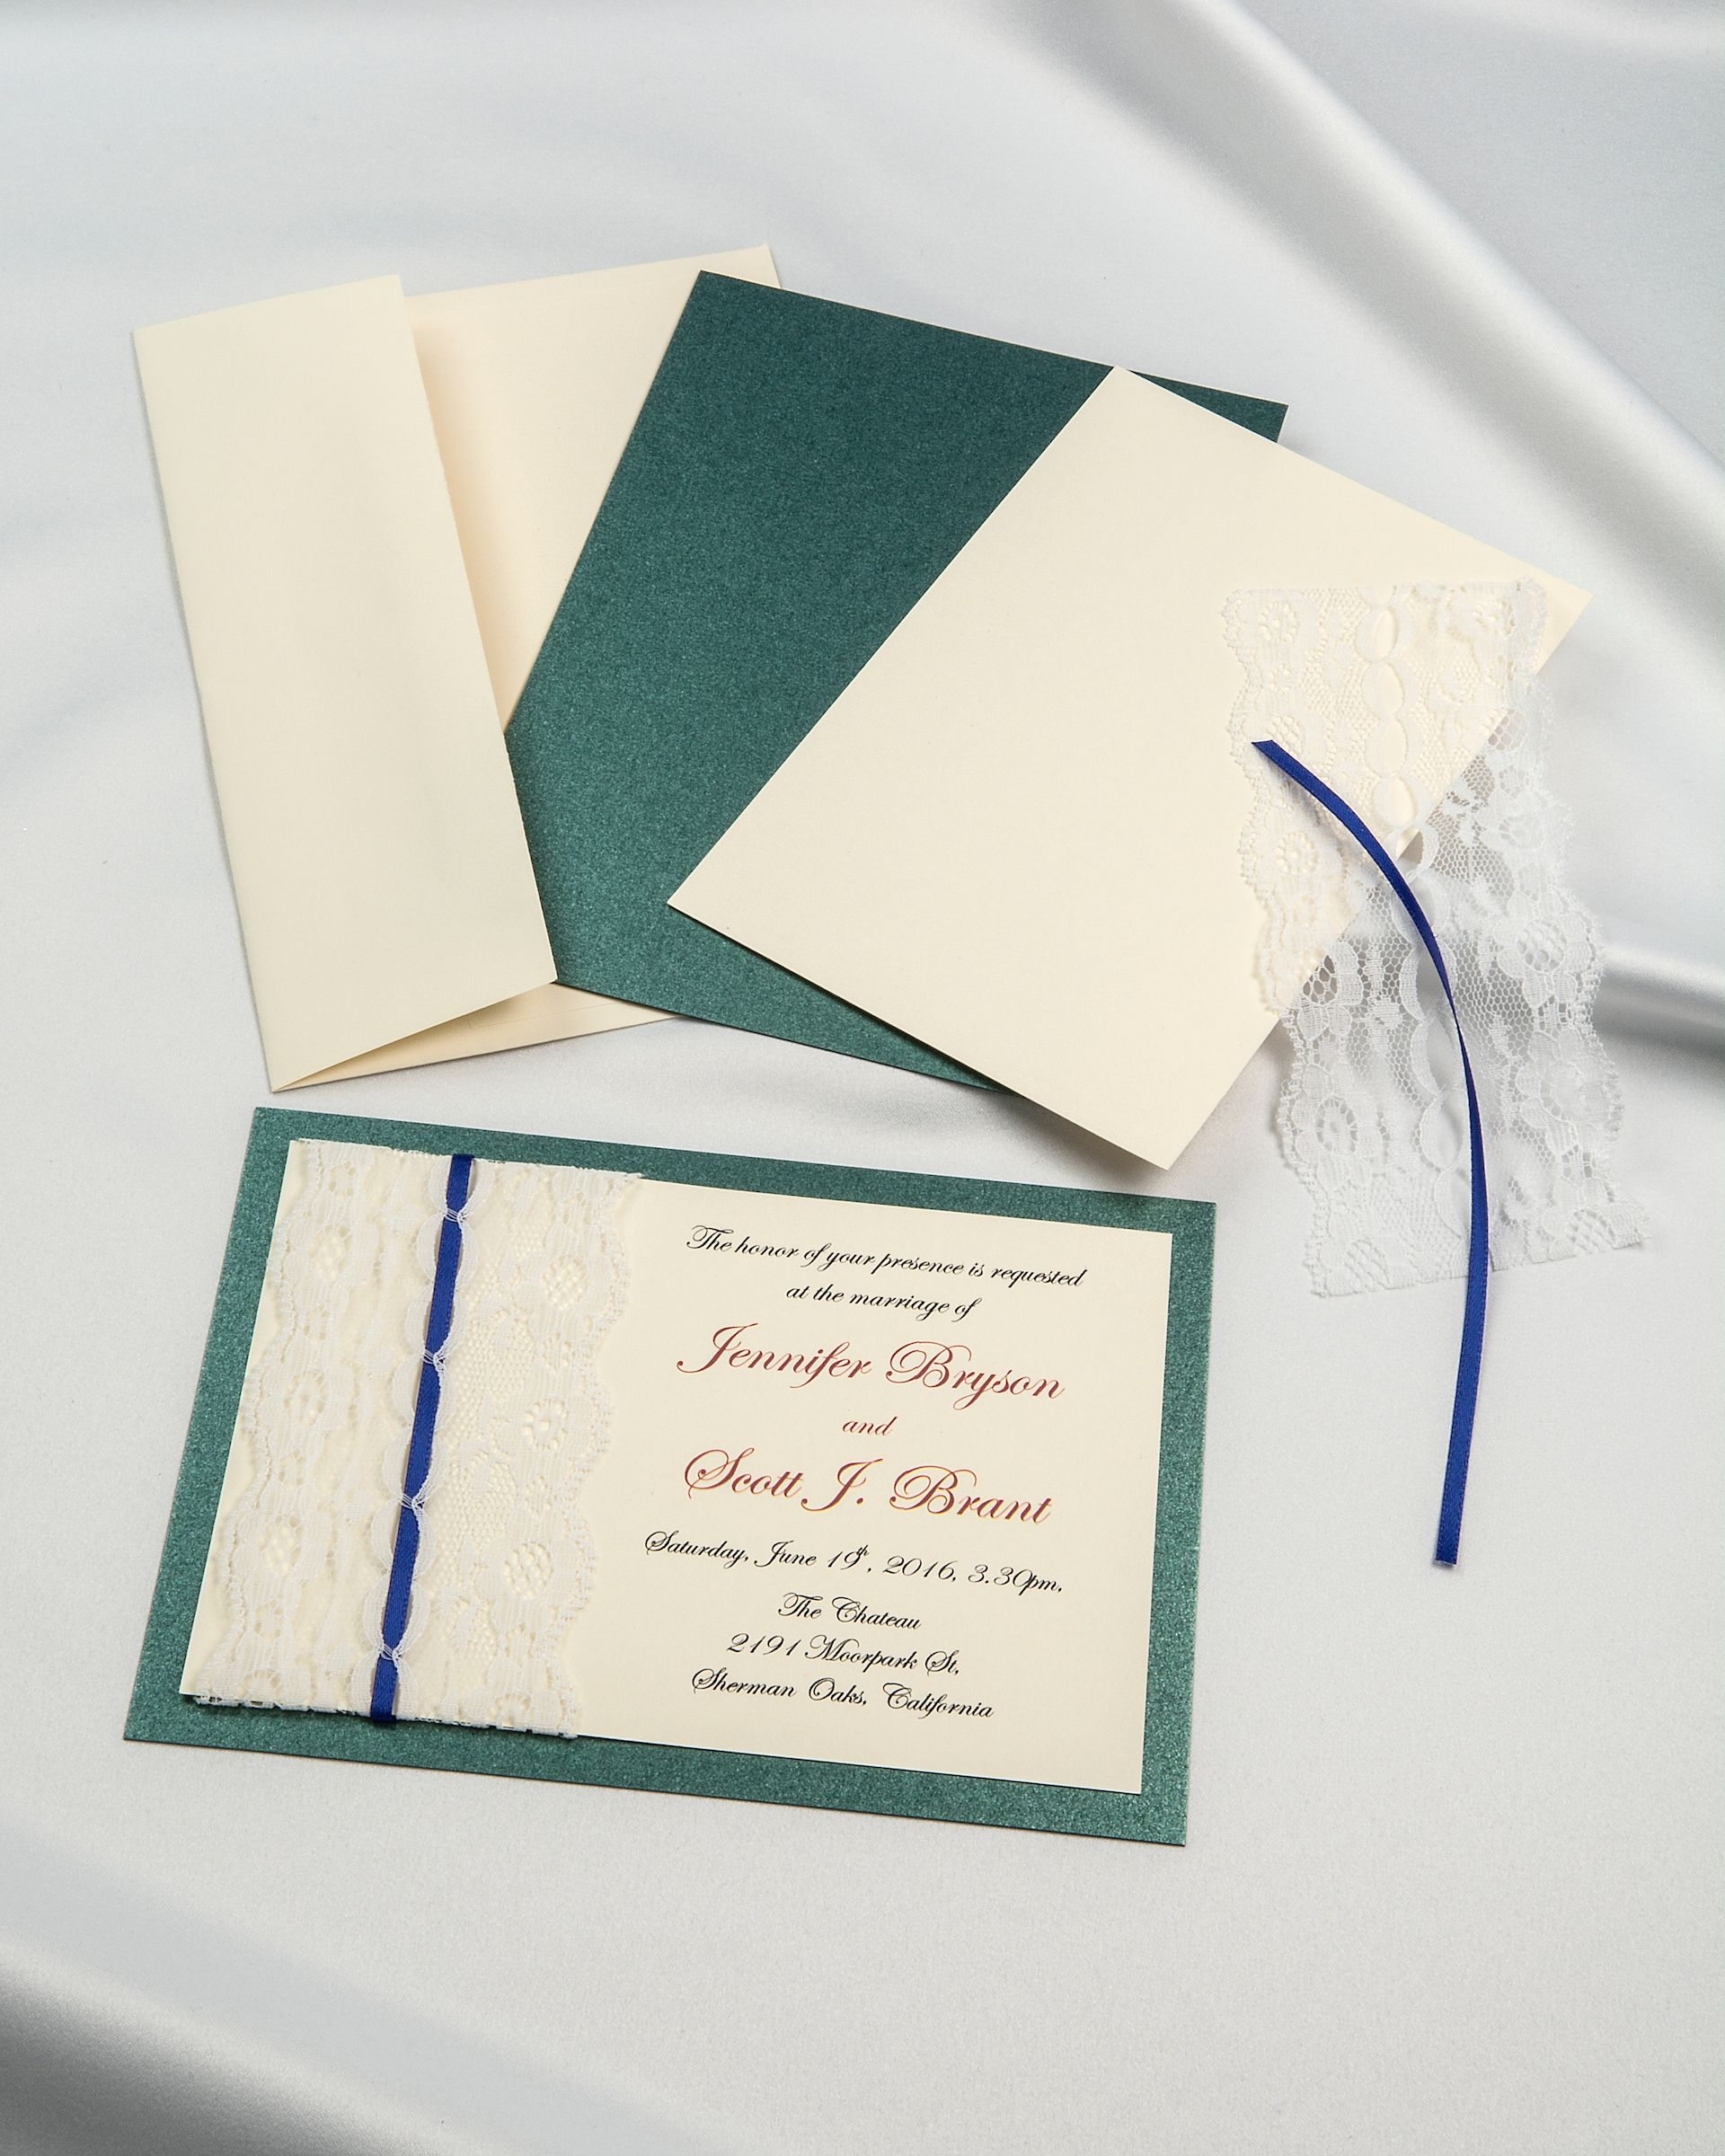 Emerald Green Shimmer Threaded Real Lace DIY Invitation With Cream Card And Blue Ribbon